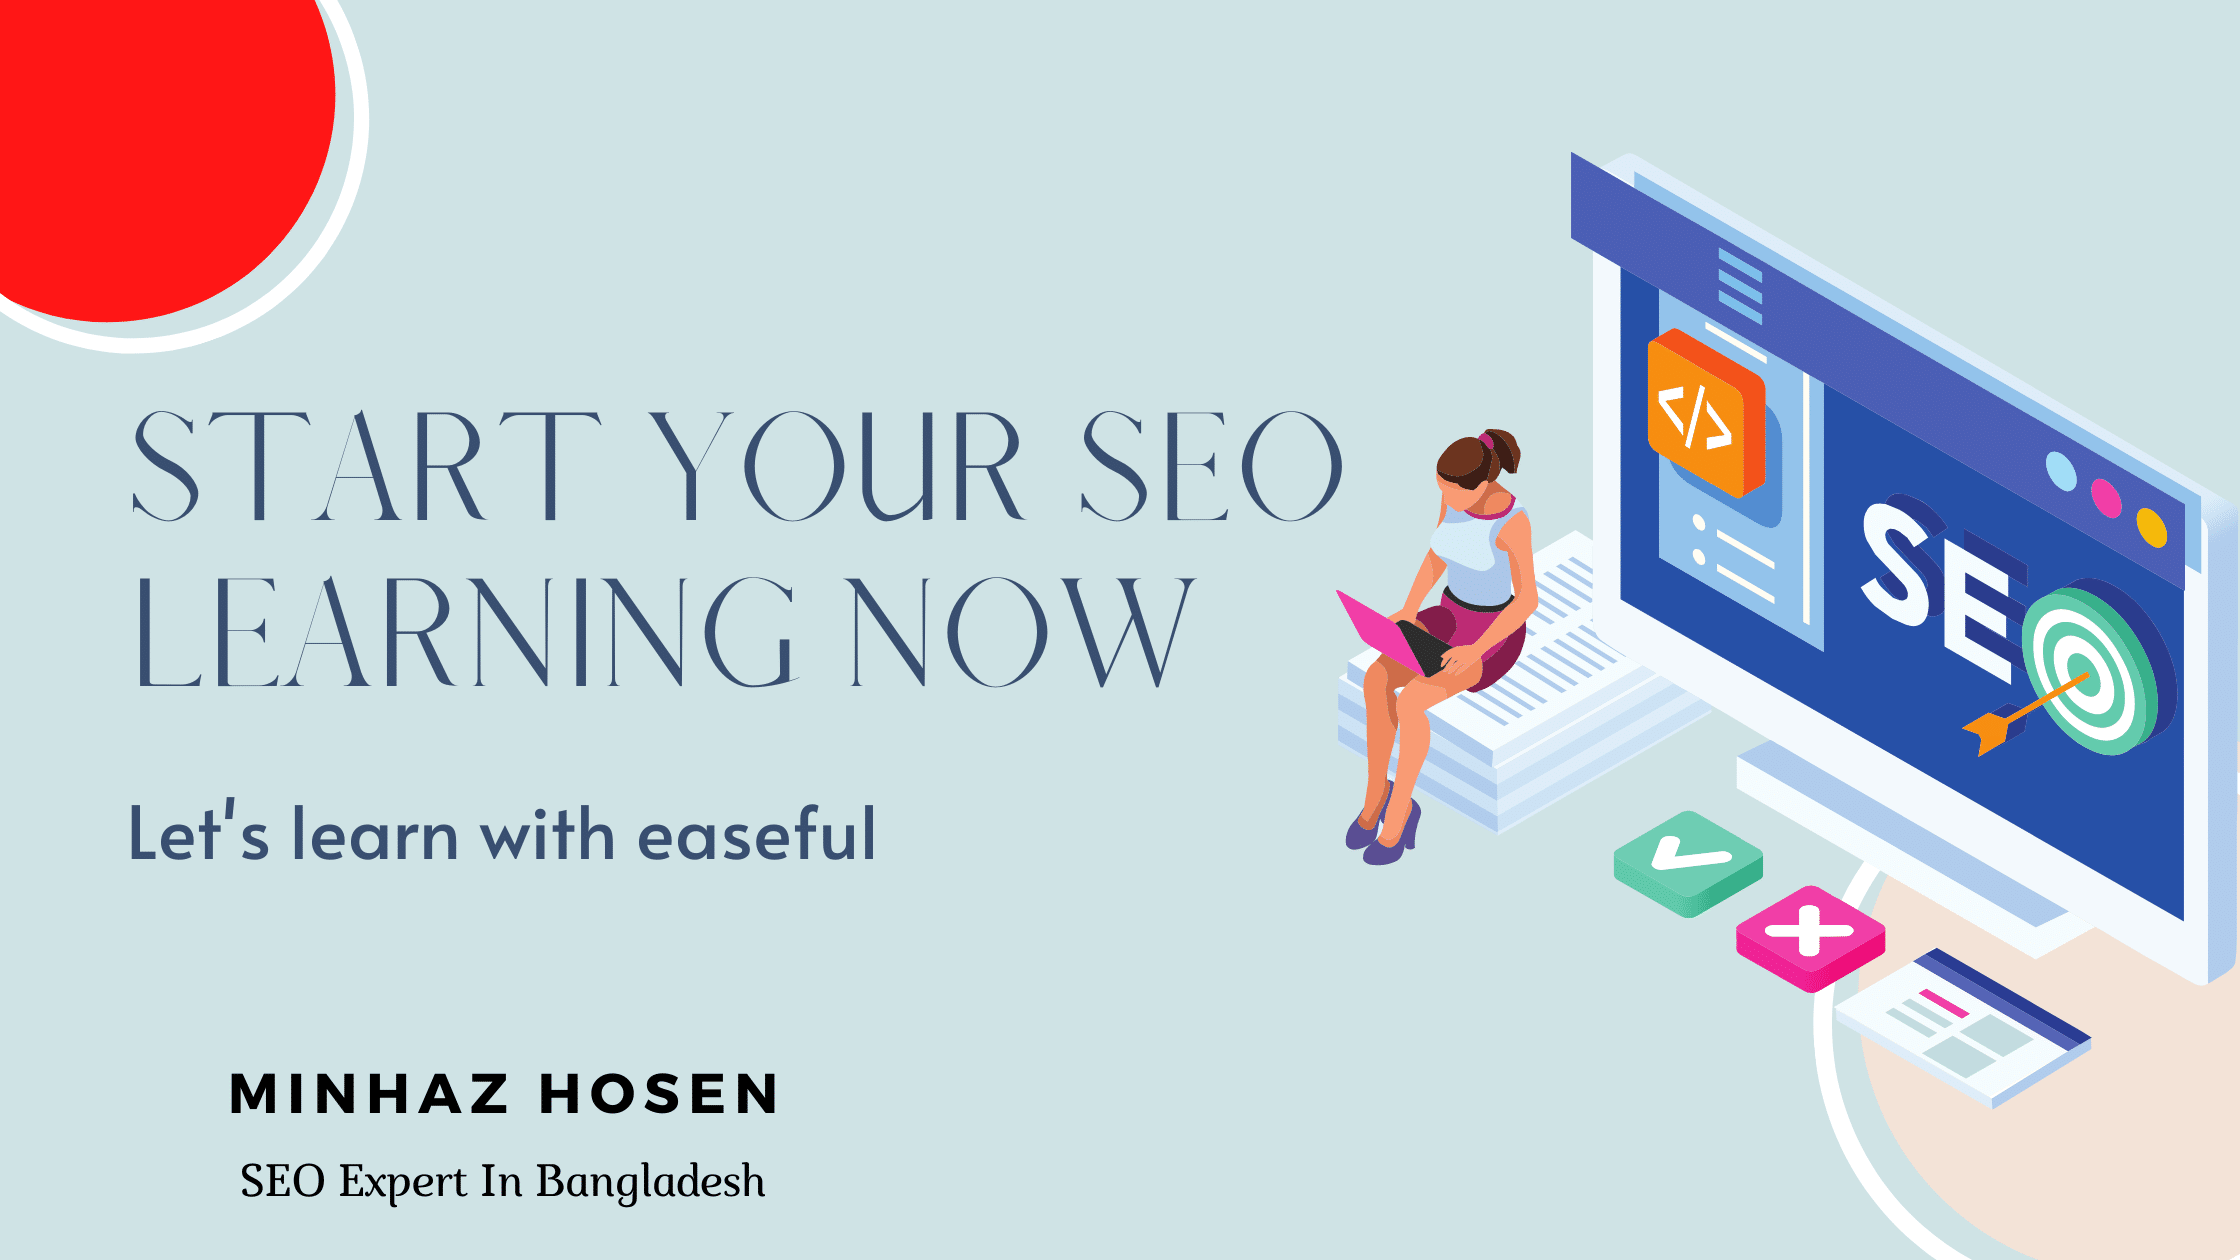 Start Your SEO Learning Now